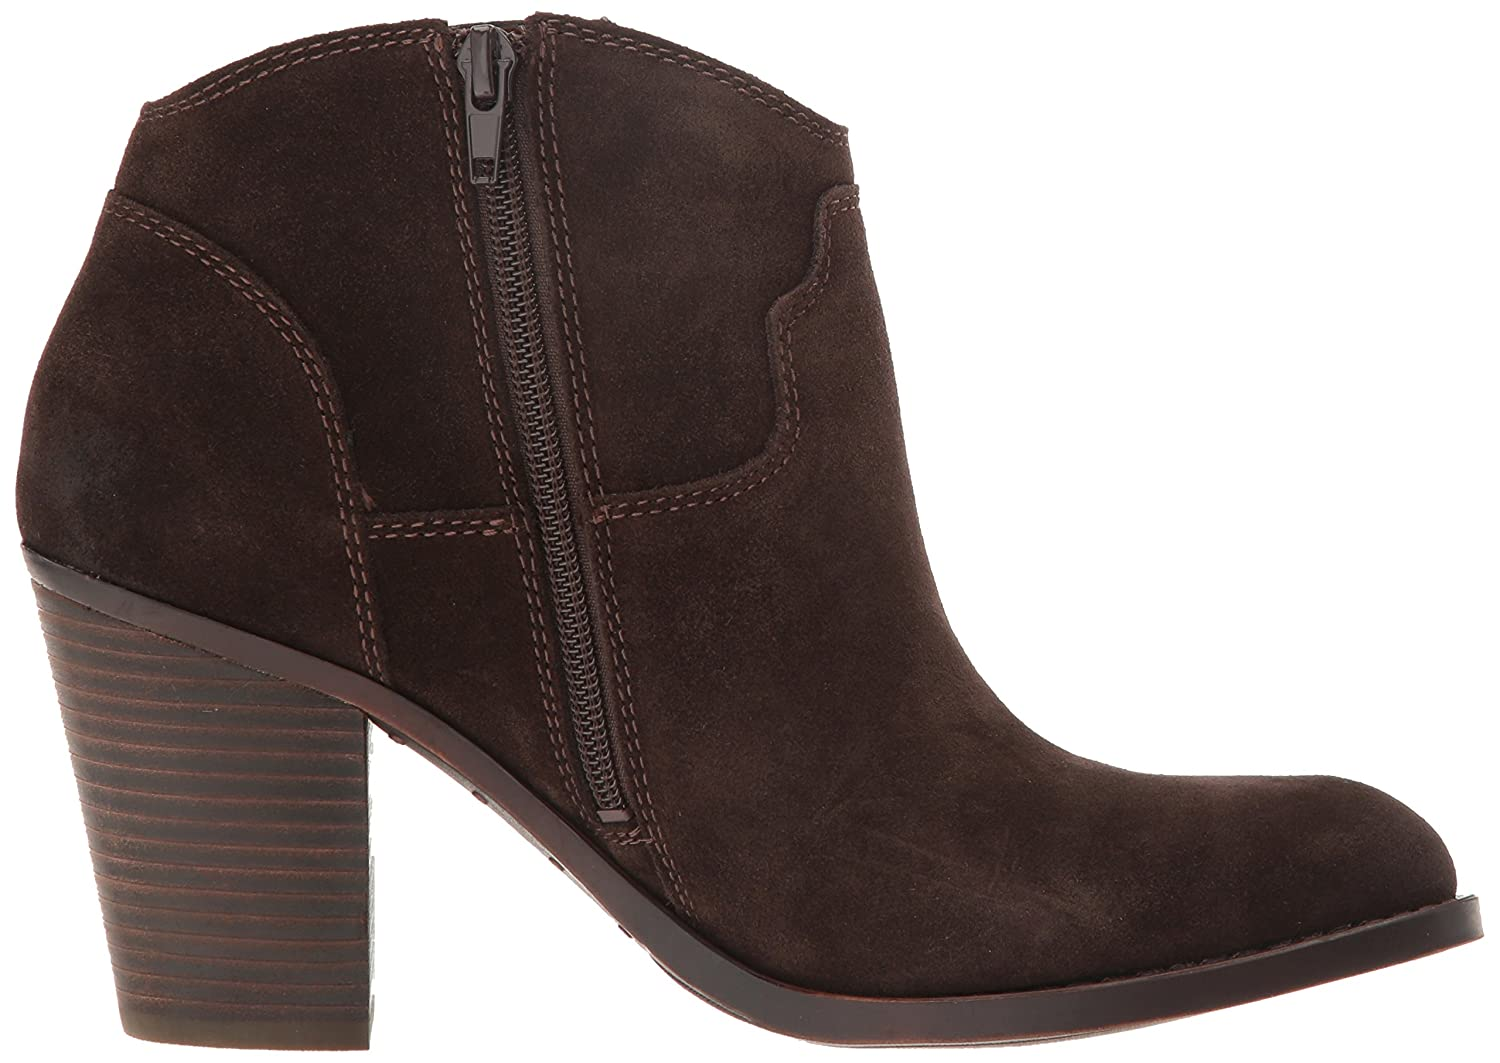 Lucky Brand Women's 11 Eller Boot B01IQ65OJQ 11 Women's B(M) US|Java 4ffe23